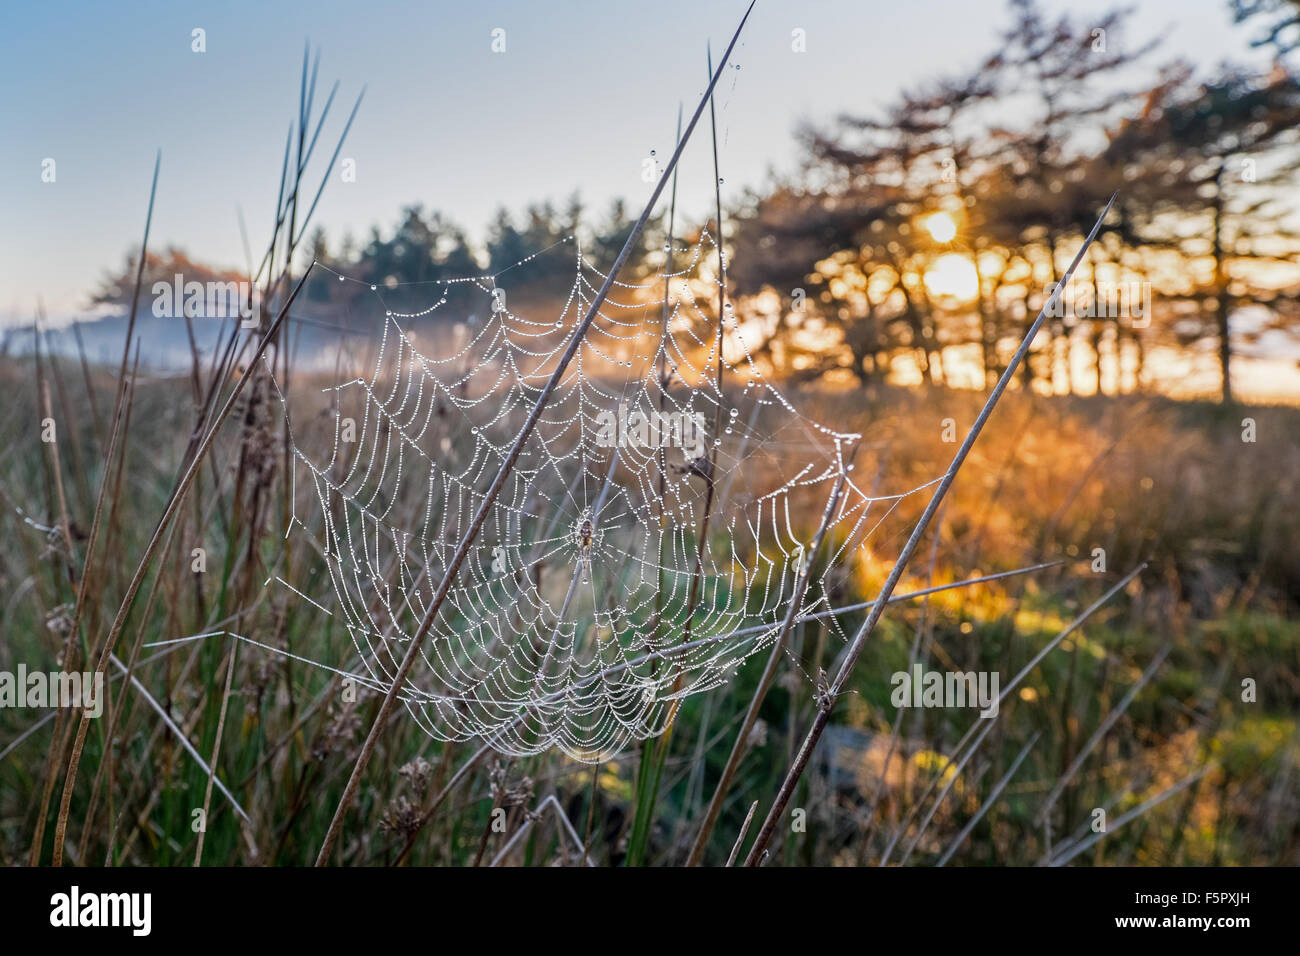 Cobwebs and late afternoon sun on misty Autumn day in the Peak District, UK - Stock Image